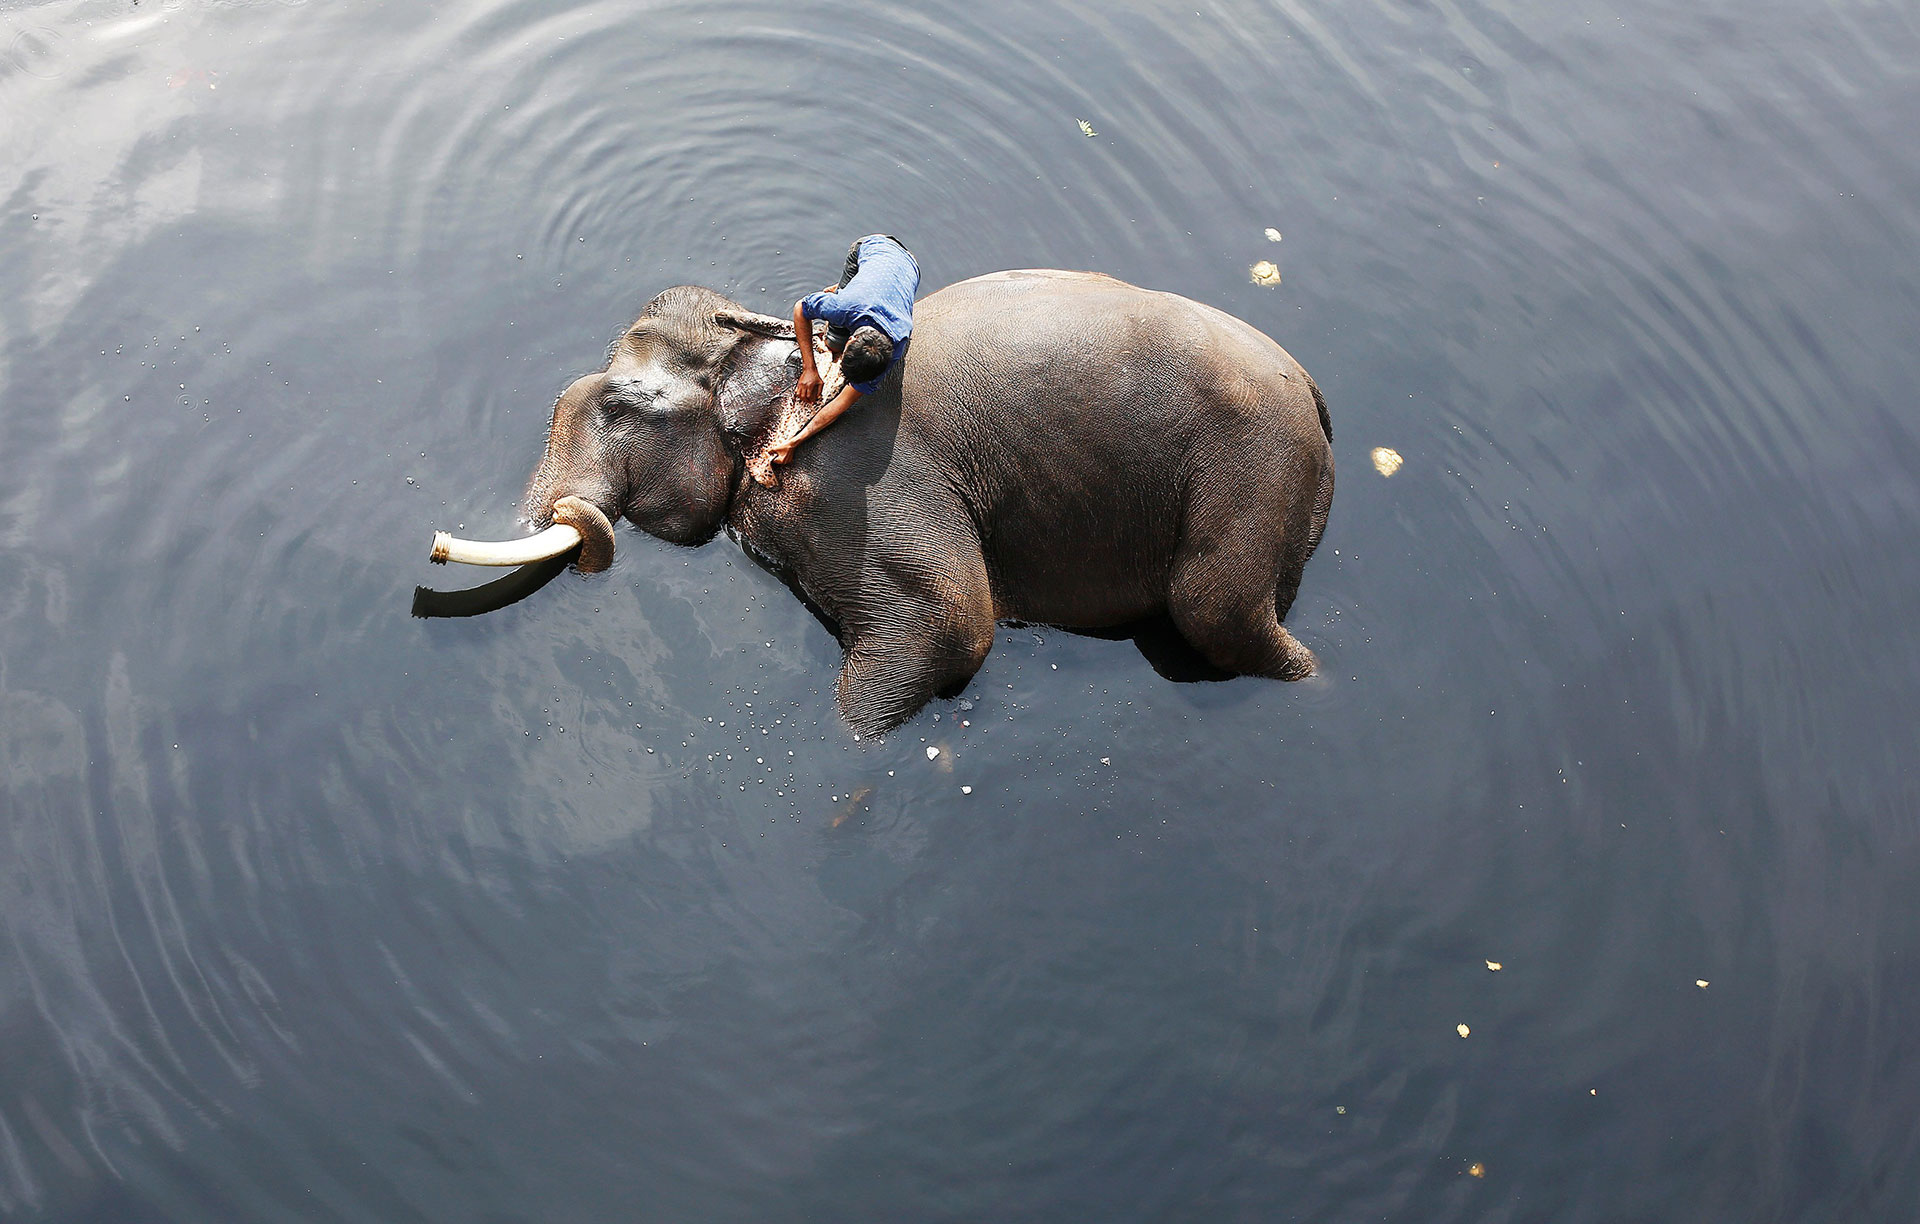 A mahout bathes his elephant in the Yamuna river in New Delhi